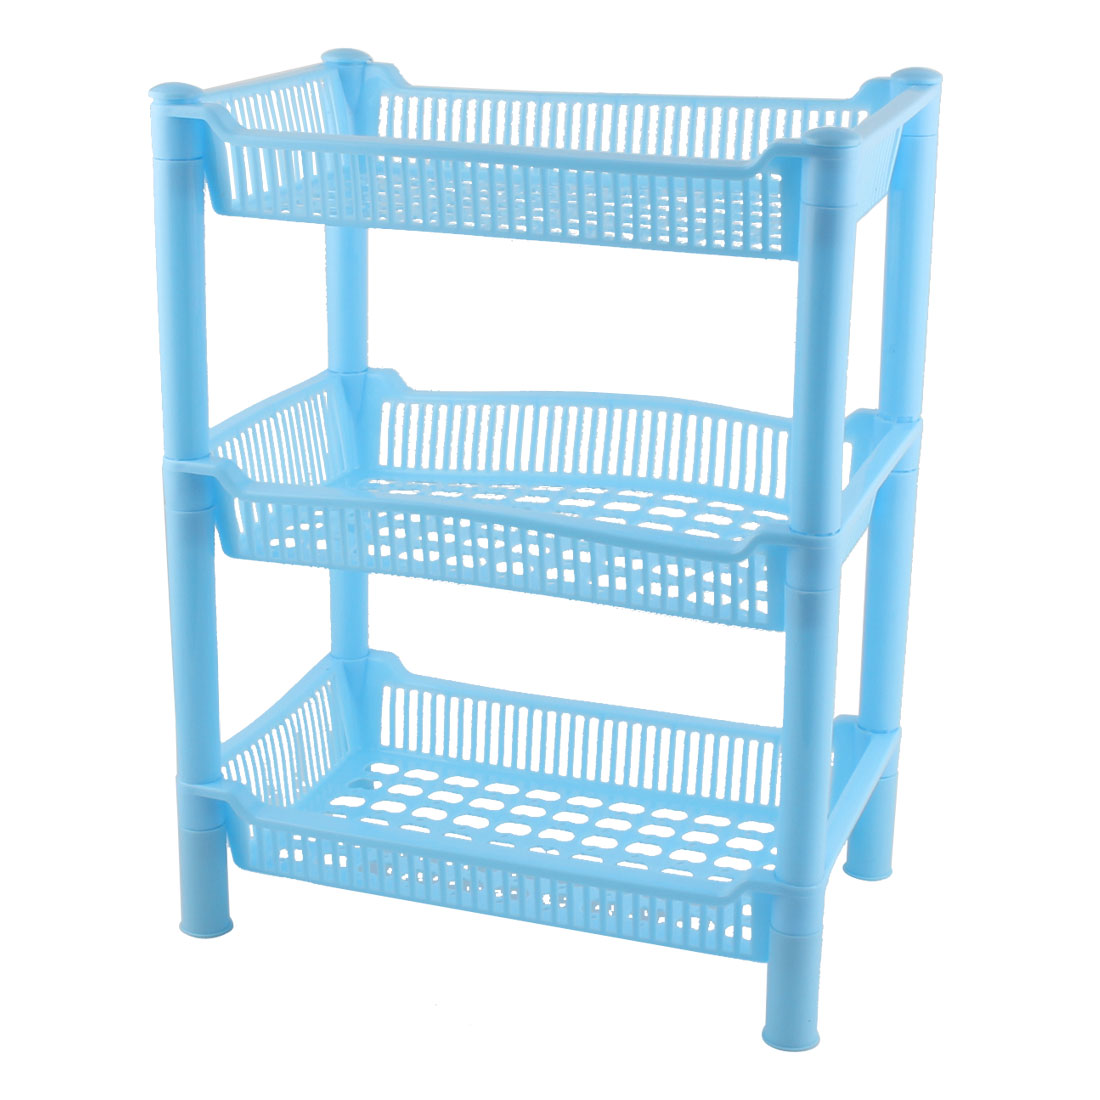 Household Bathroom Plastic Rectangular 3 Layers Storage Rack Organizer Blue